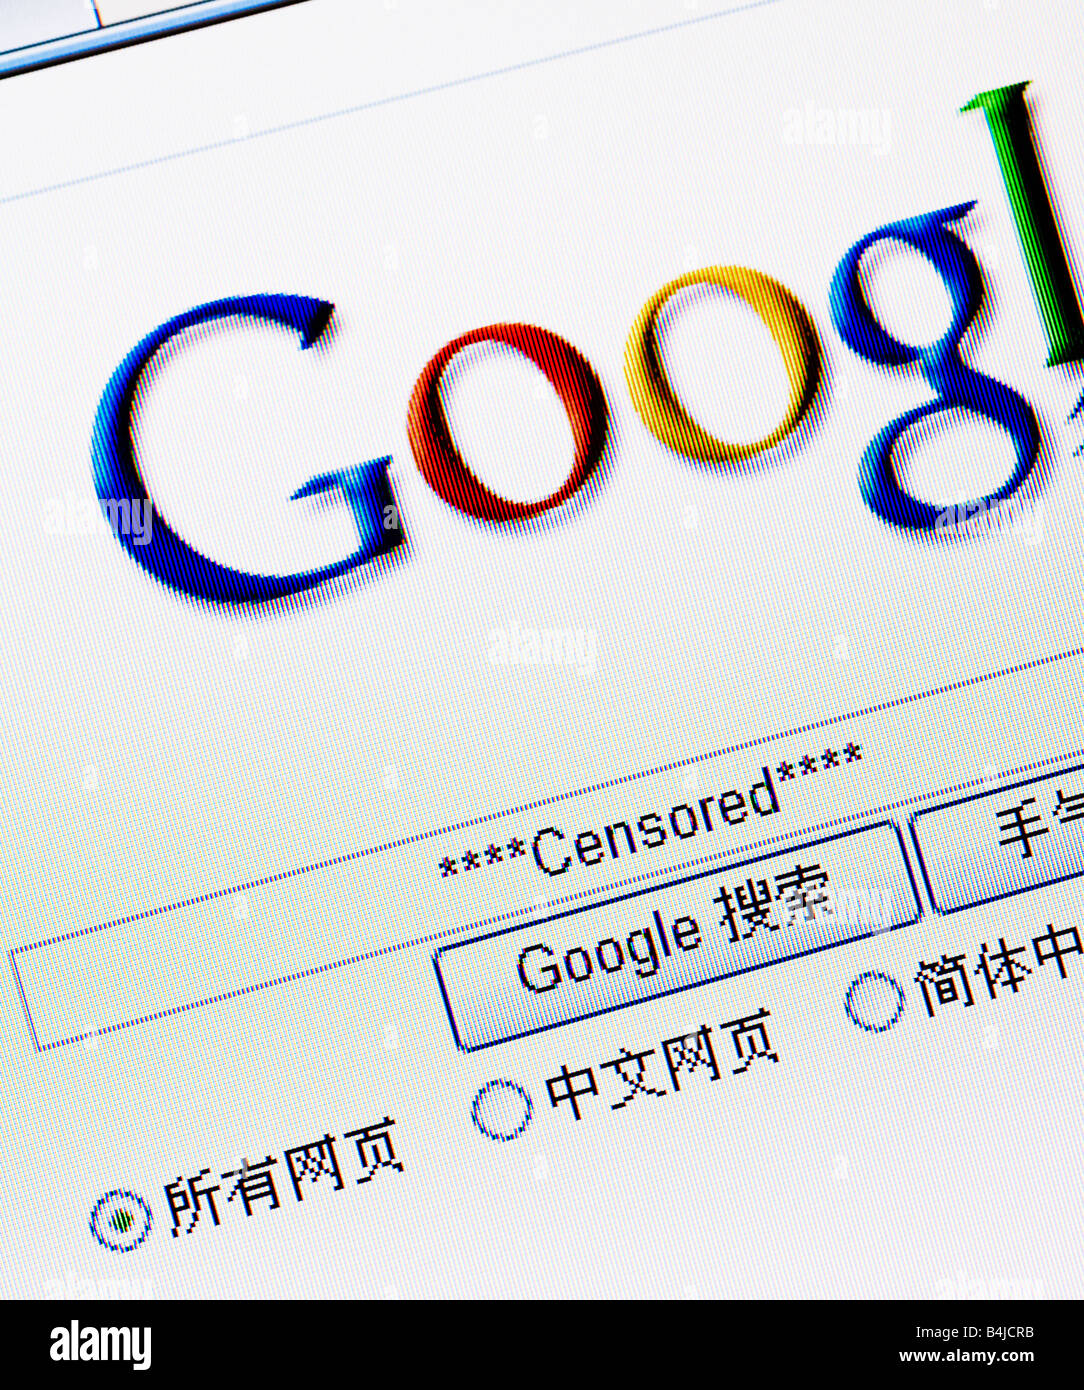 Google China website splash screen and logo close up with search box showing as censored - Stock Image